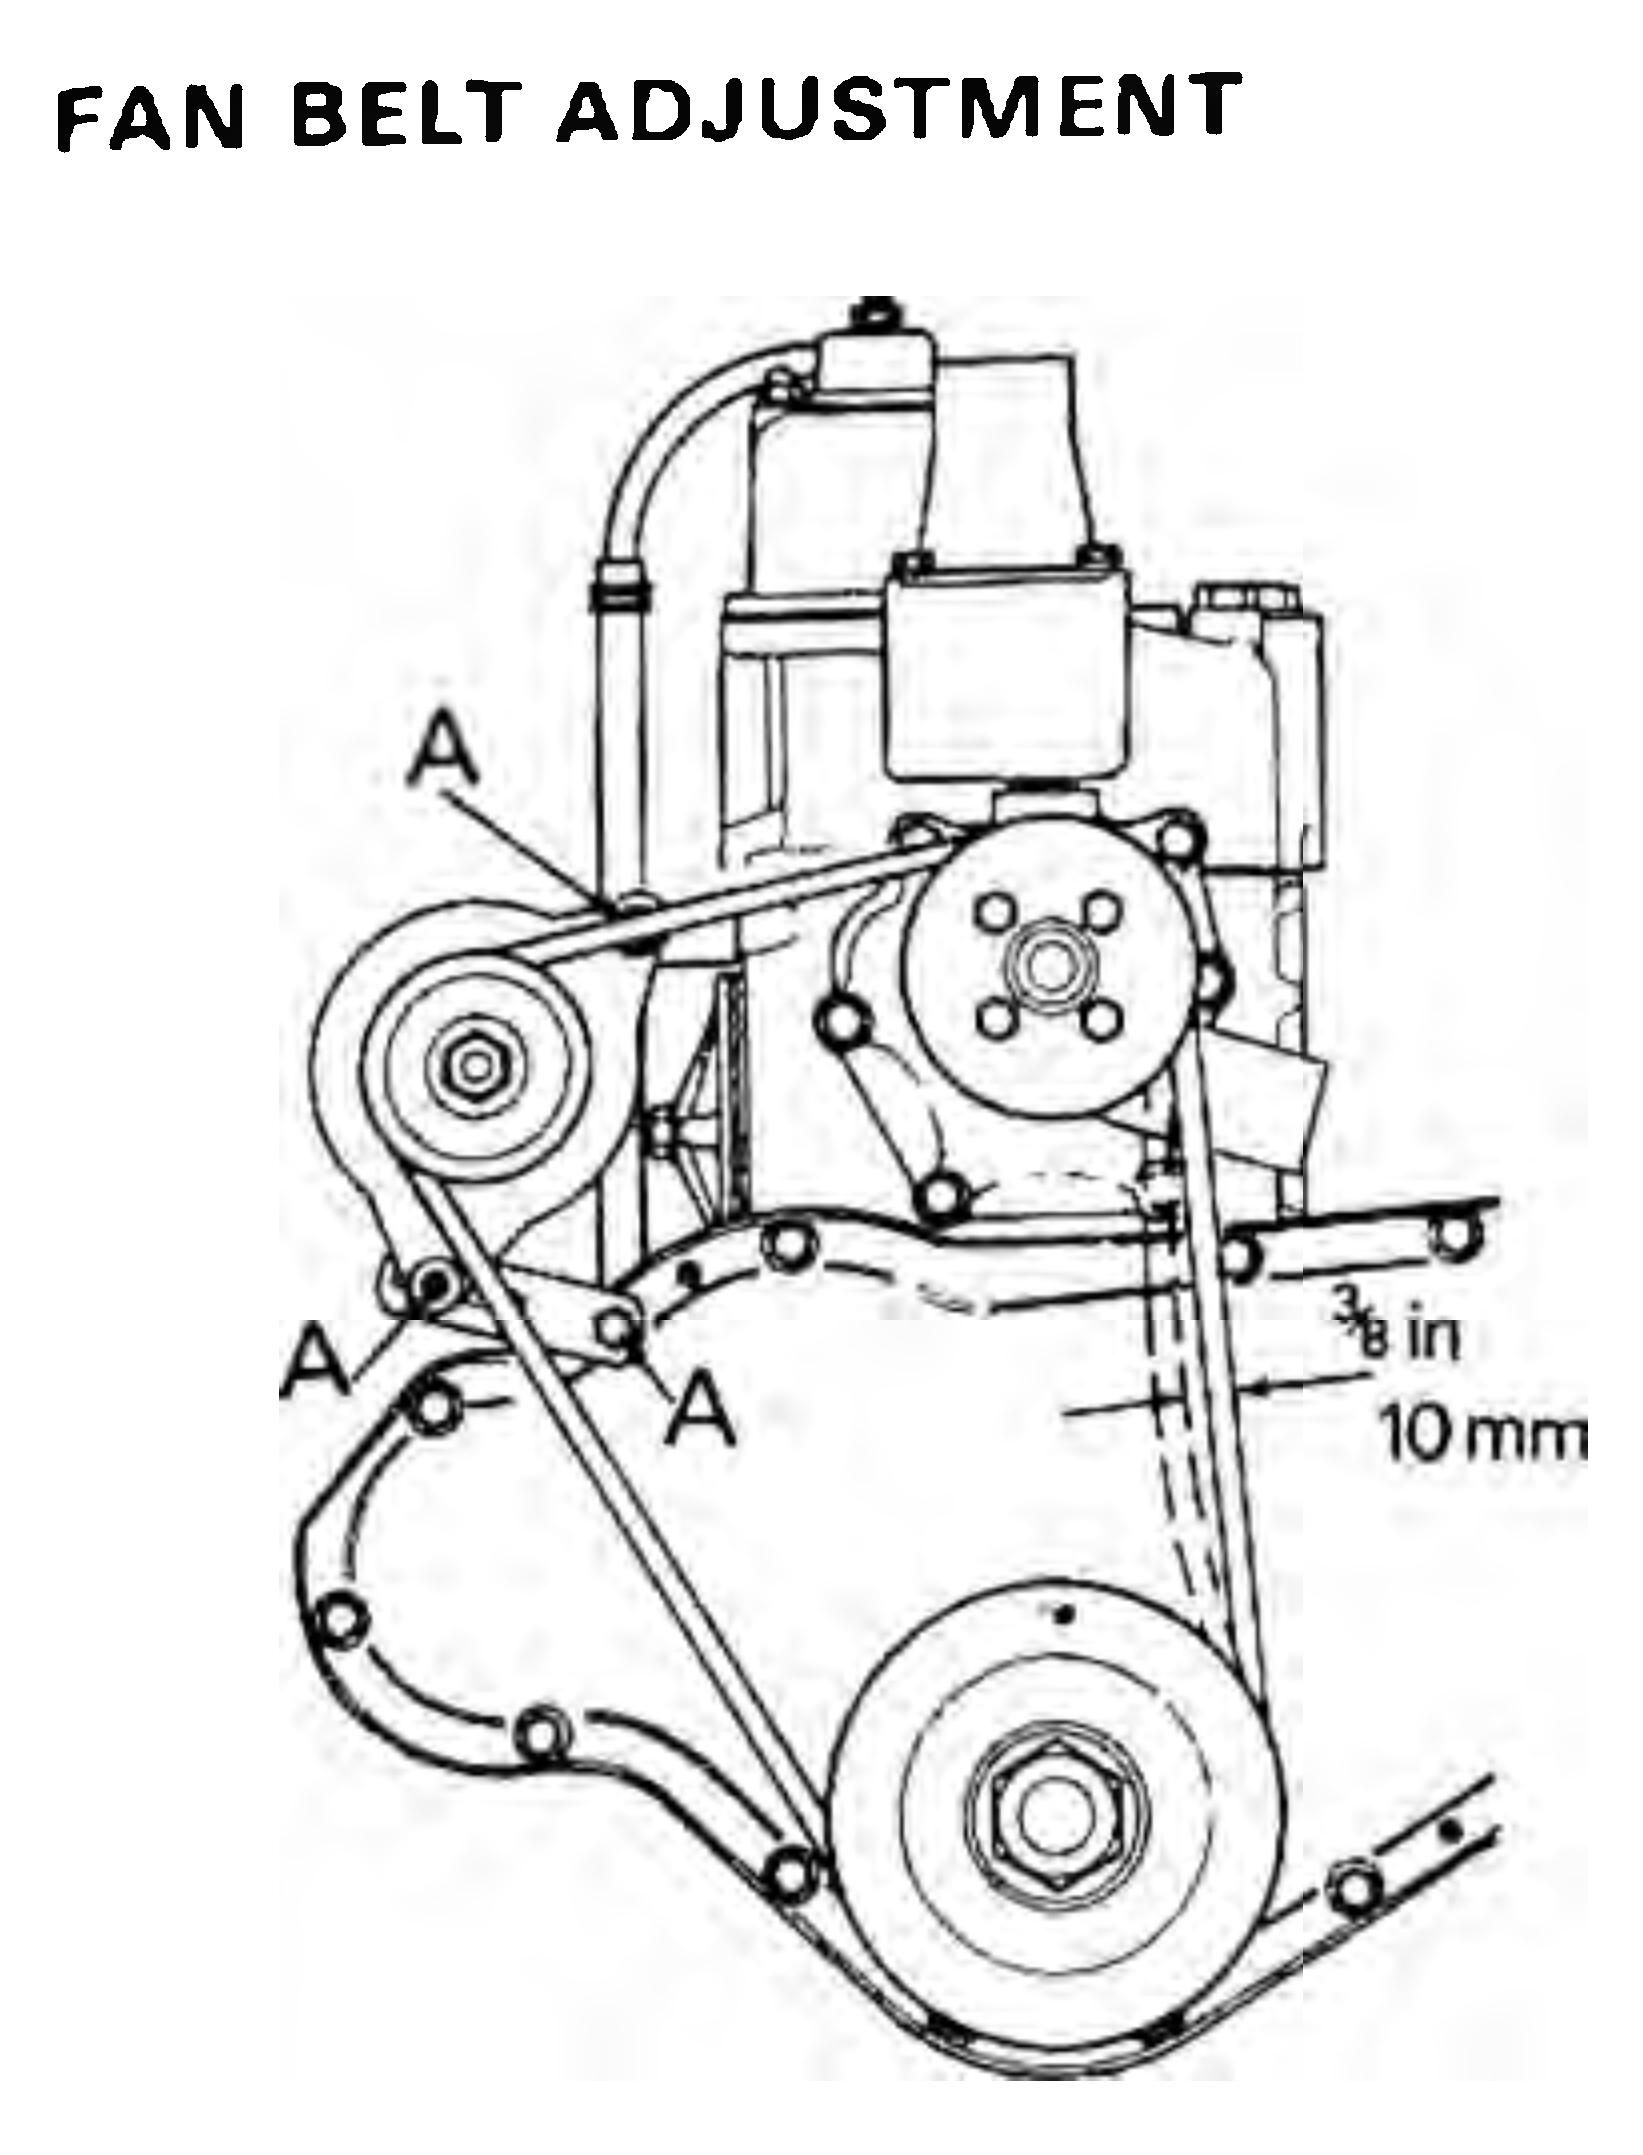 Use this adjustment on most common tractor engines and you